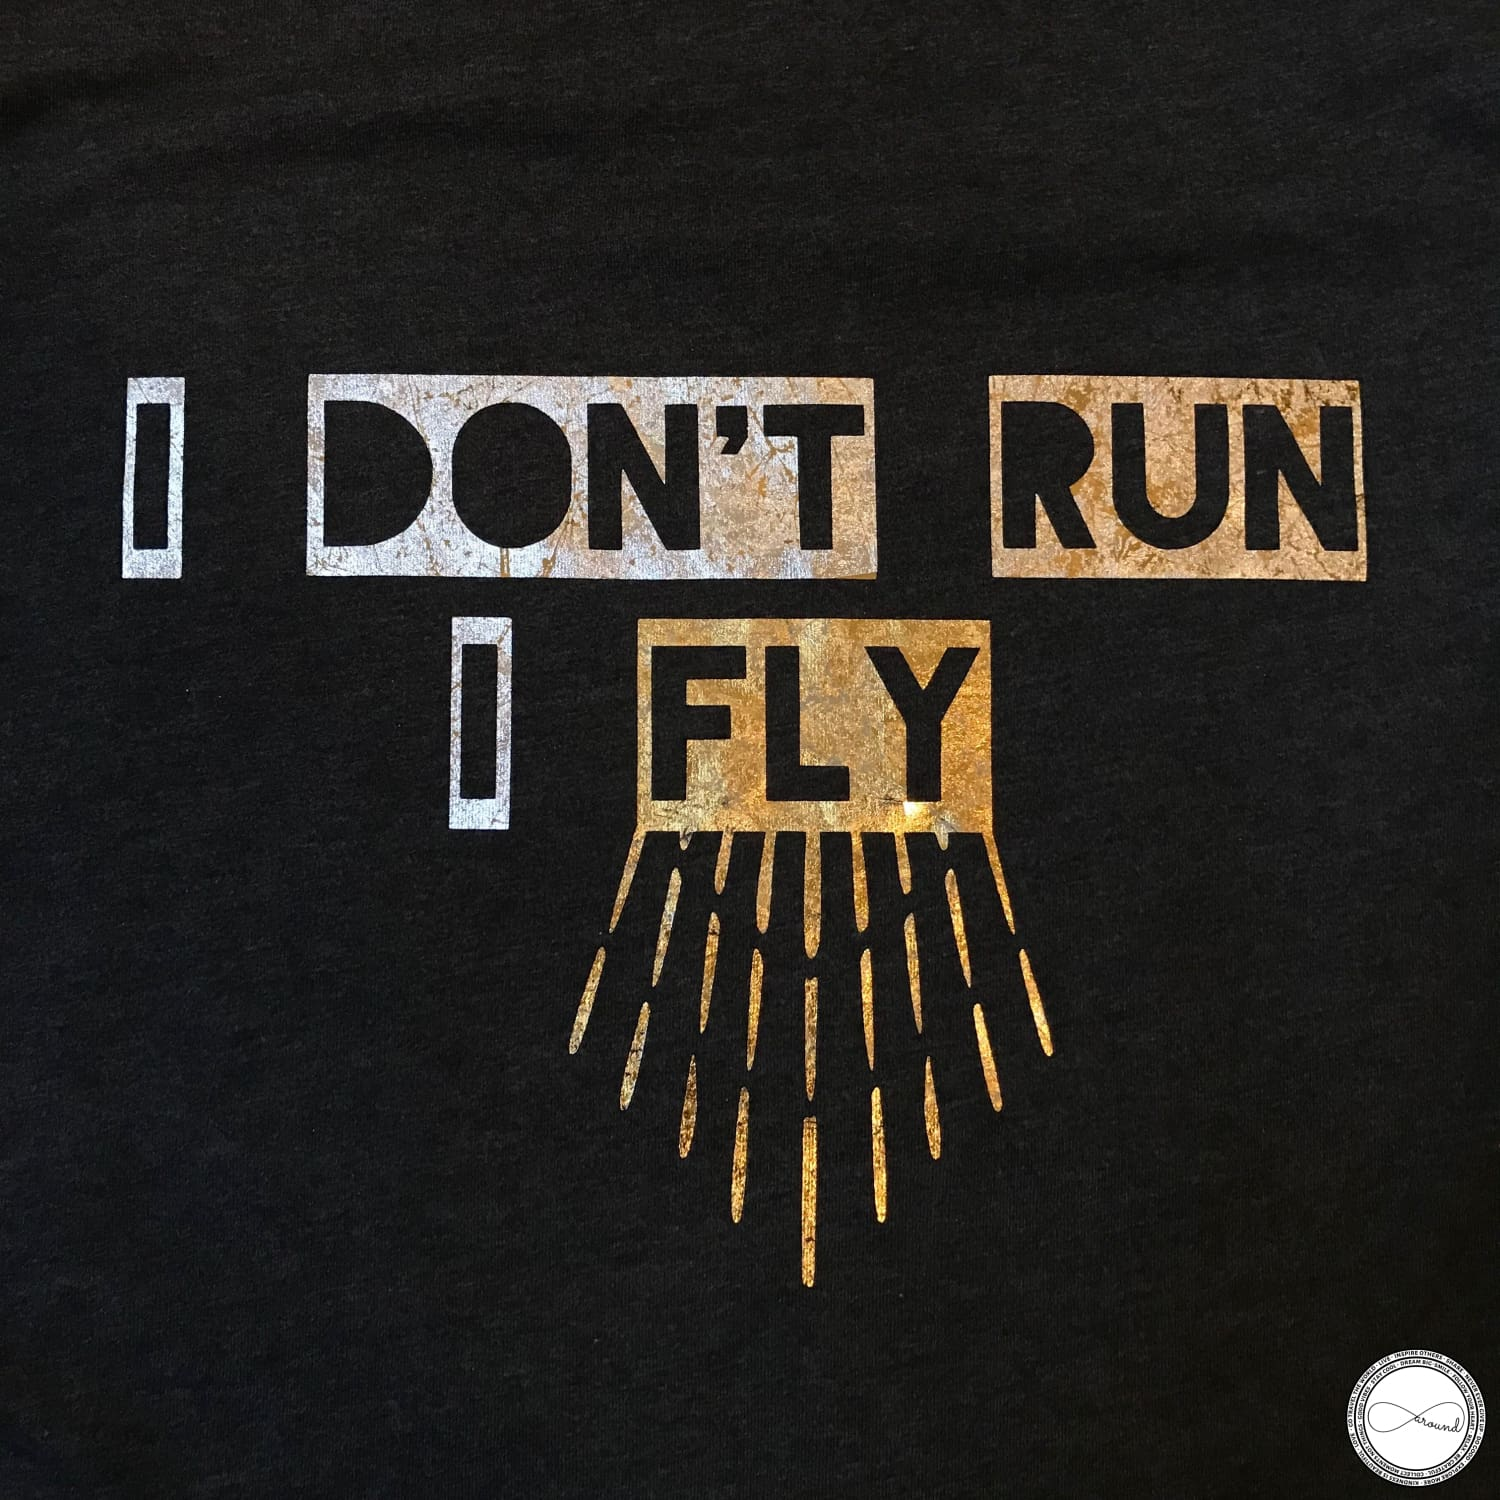 Around Eco fair trade and ecofriendly dark gray graphic tee with the words I Don't Run I Fly Travel tshirt